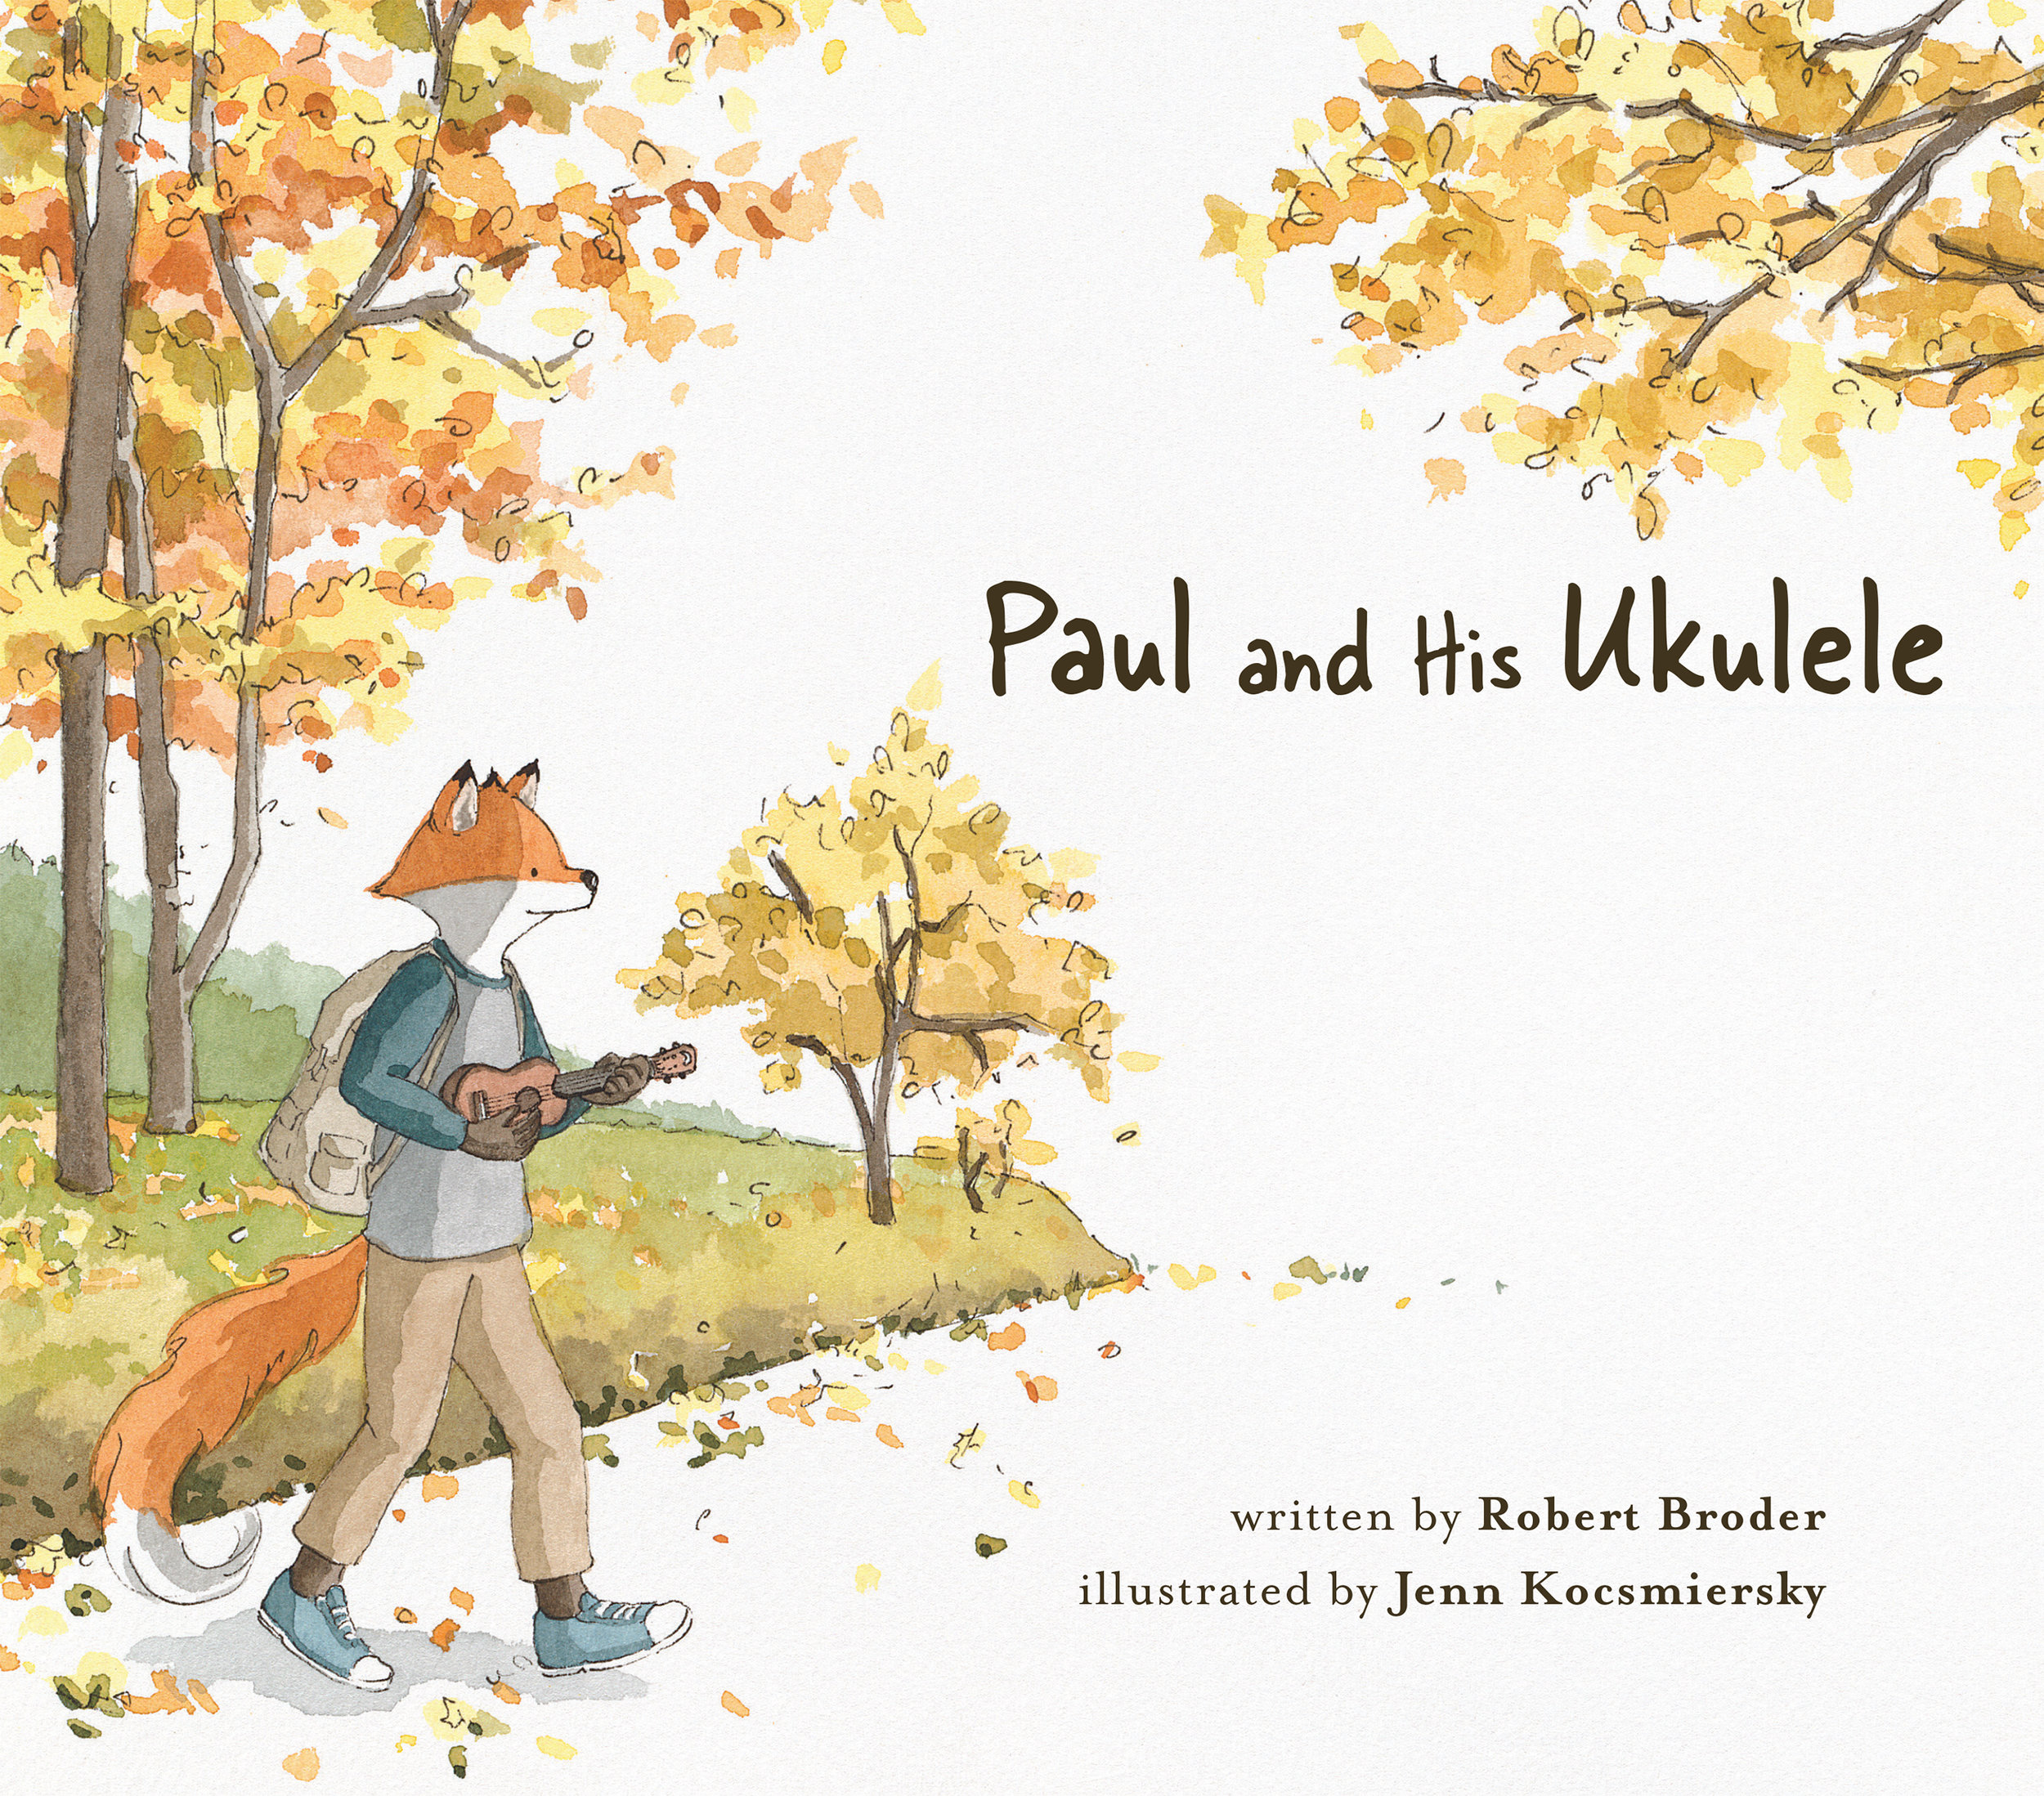 Coming this fall! - Paul and His Ukulele, a debut picture book written by Robert Broder and illustrated by Jenn Kocsmiersky, is published by Ripple Grove Press and will be available this September!See other beautiful books from Ripple Grove PressAnd...read more about Paul and His Ukulelehere!:)